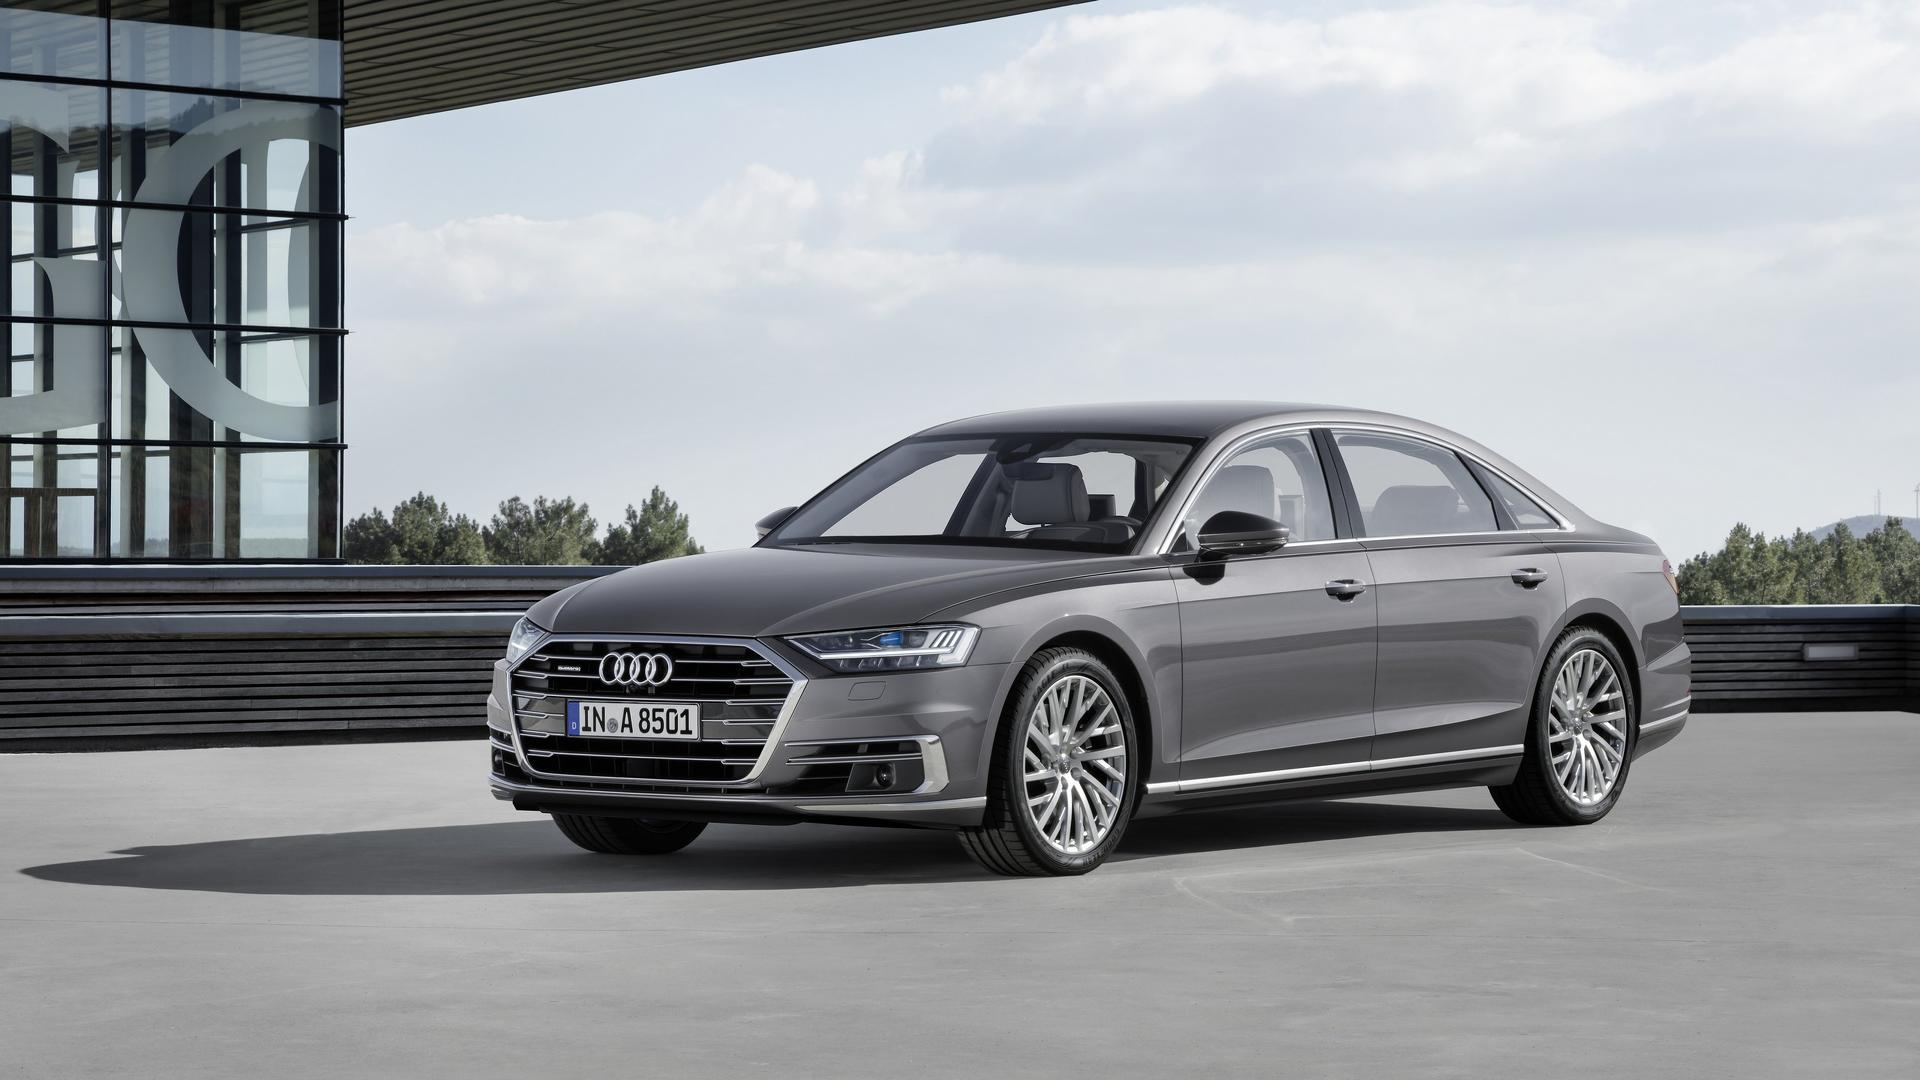 Audi A8 News and Reviews | Motor1.com